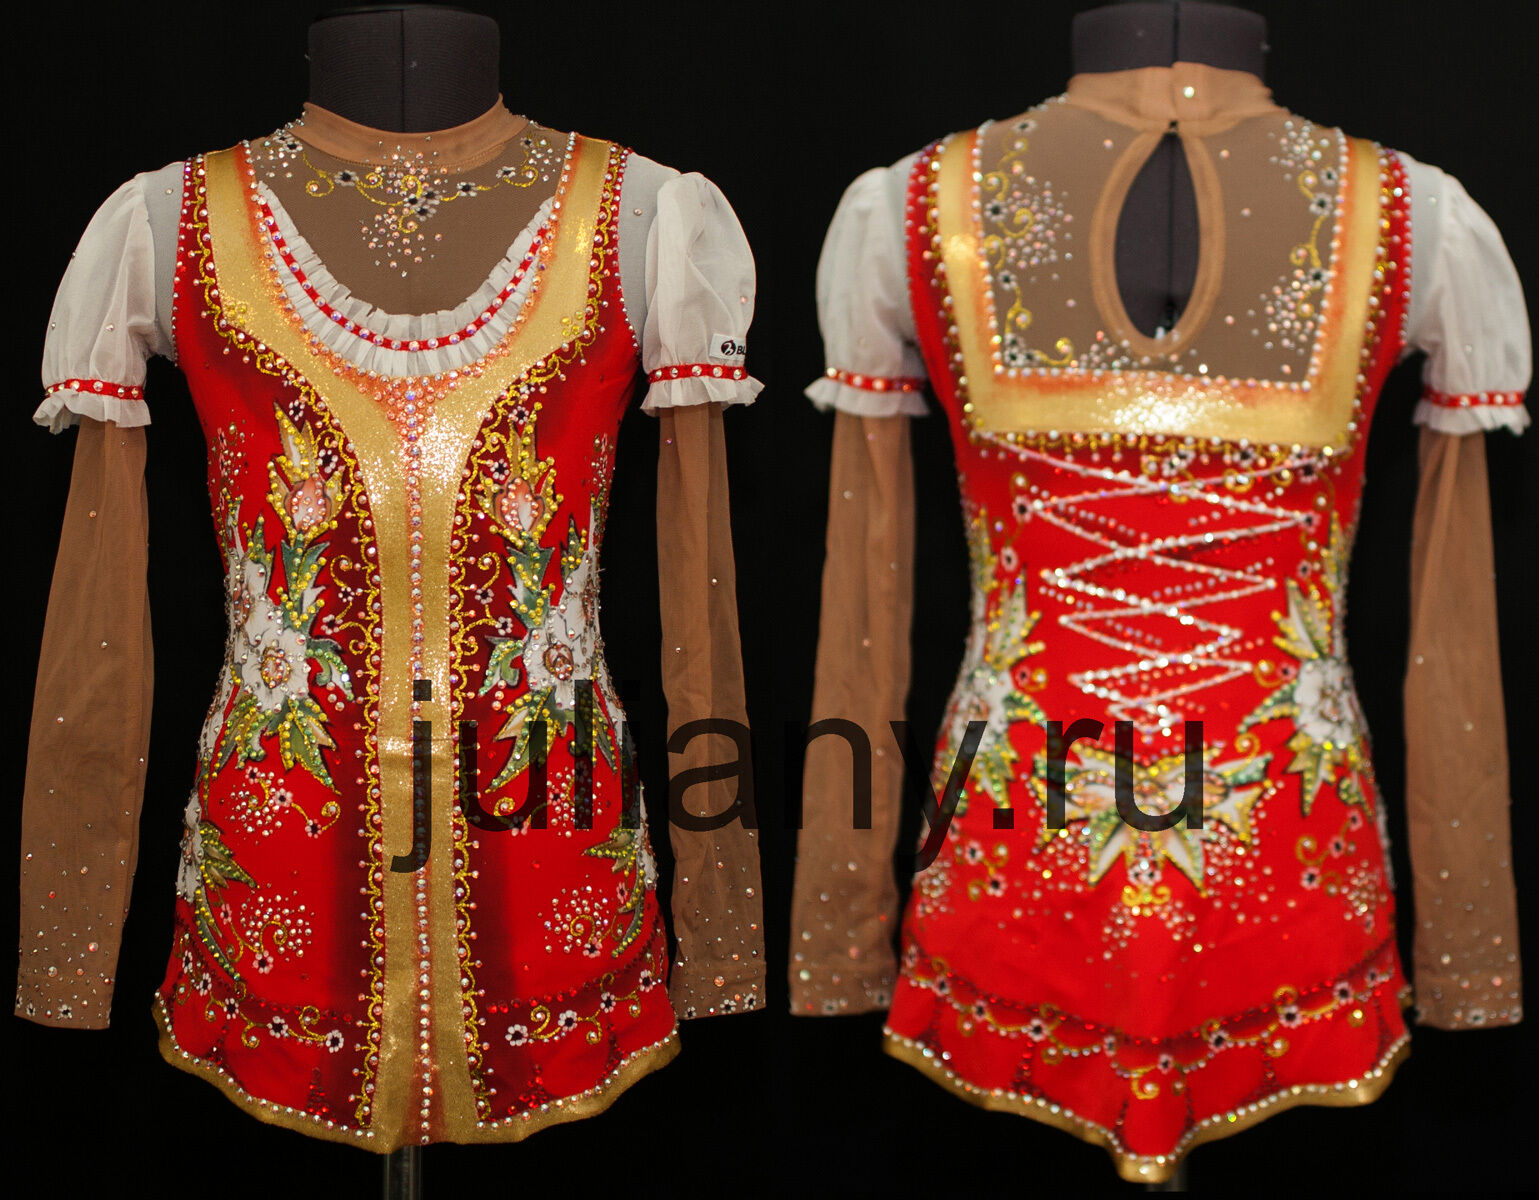 Russian style leotard for rhythmic gymnastics  Kalinka